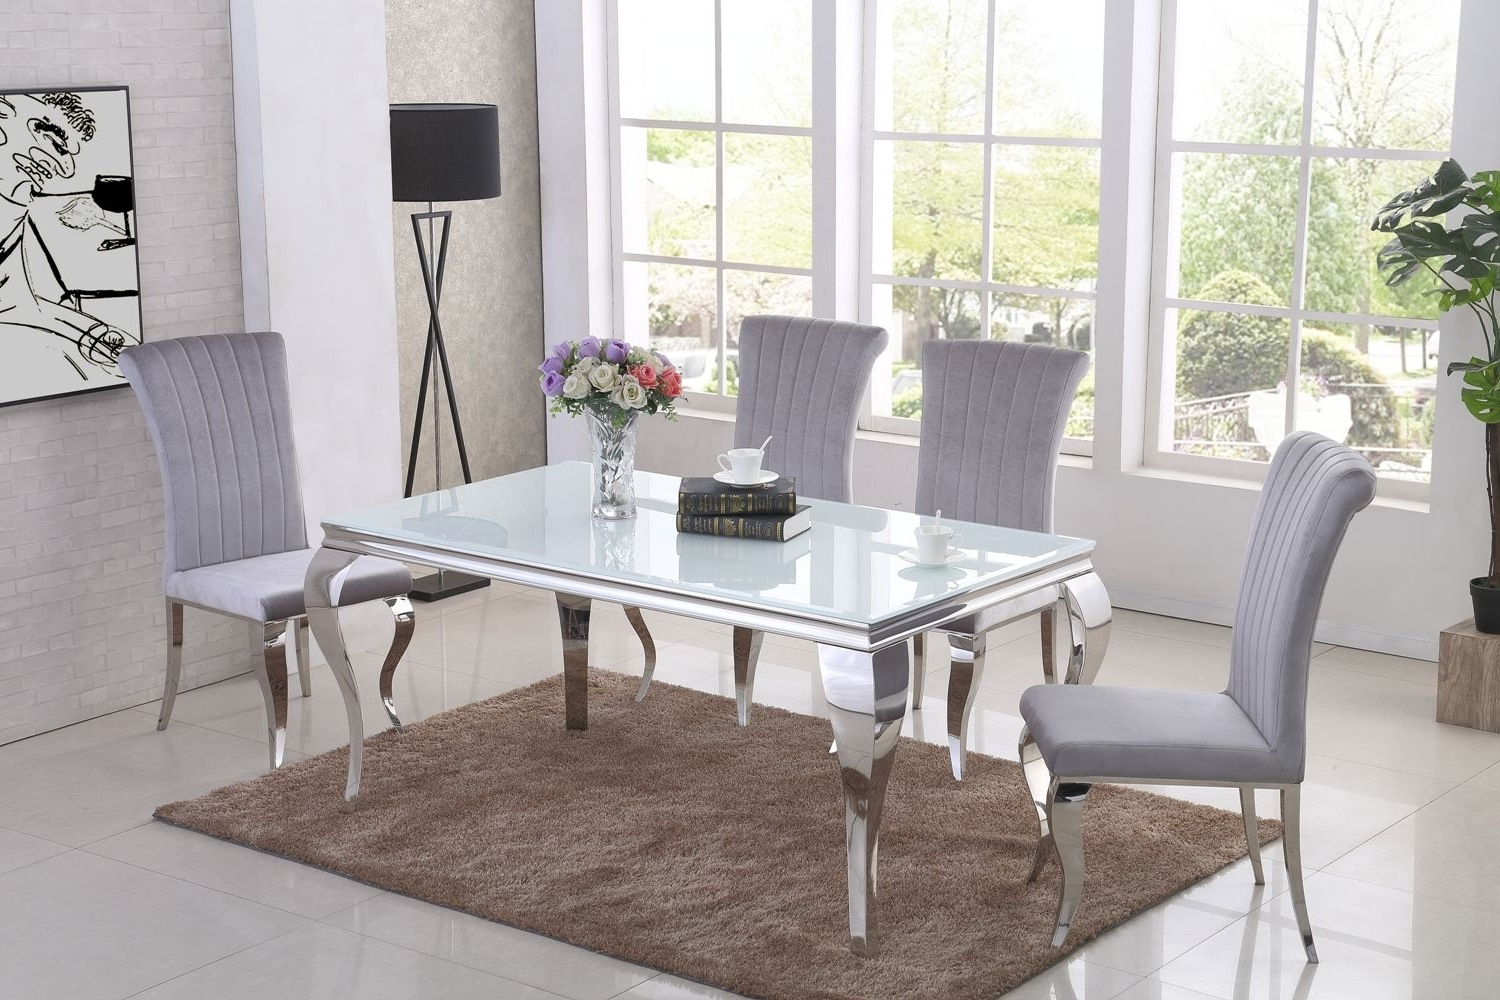 2018 Ga Liyana White Dining Table & 4 6 Grey Chairs Within White Dining Tables (View 1 of 25)